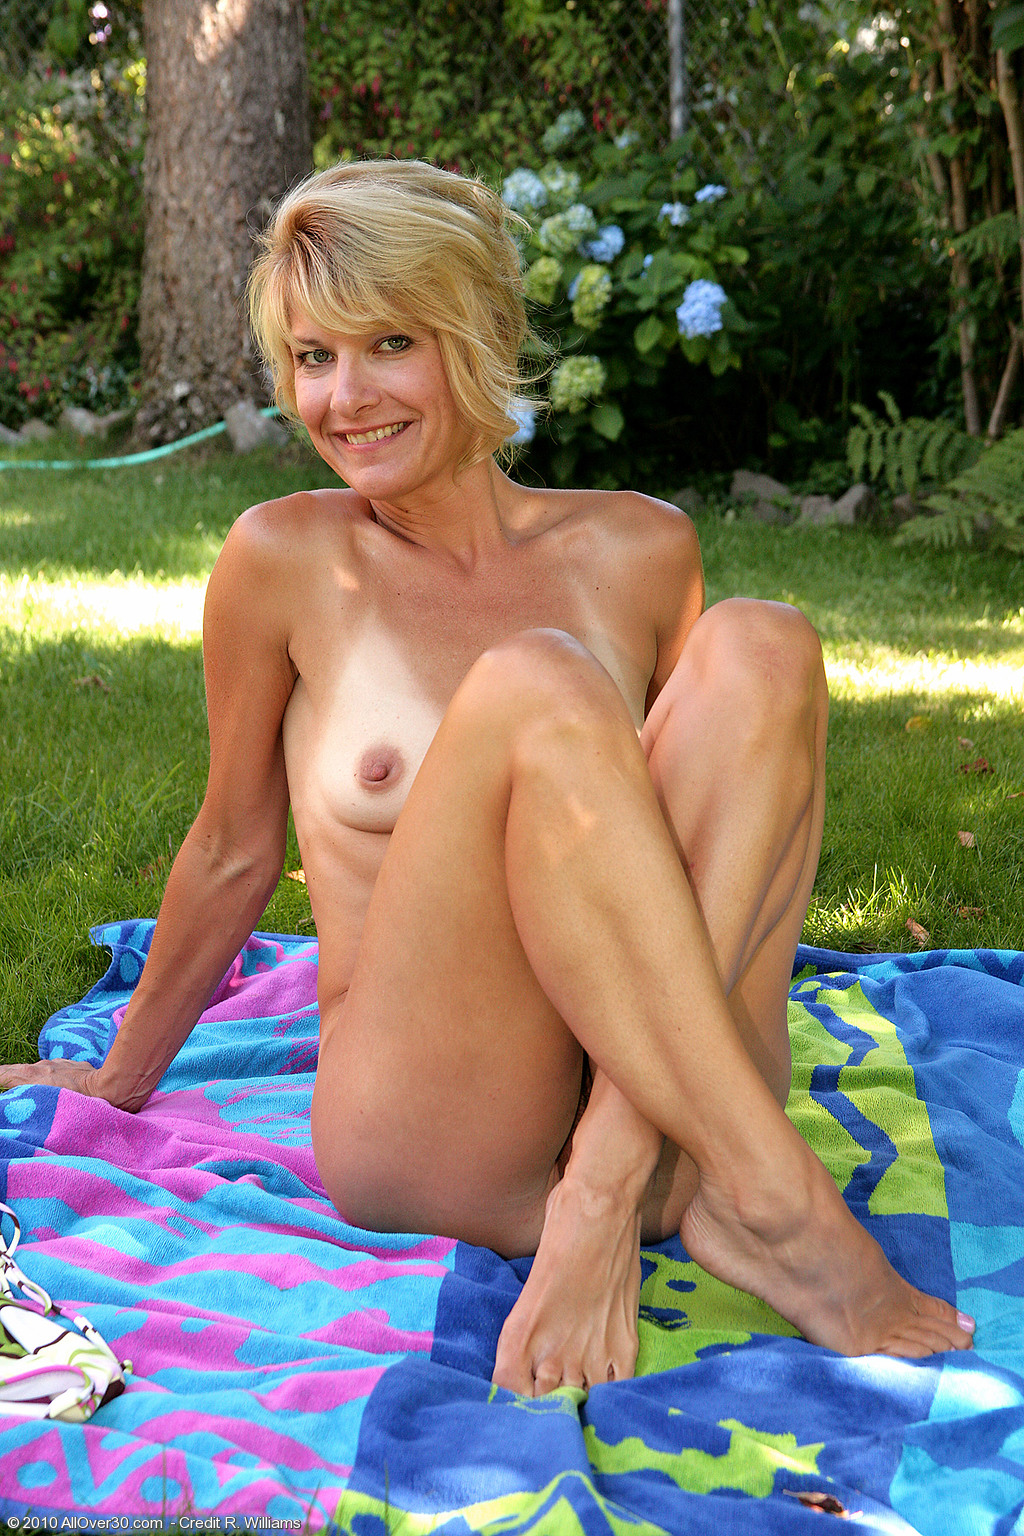 from Marlon old women nude group